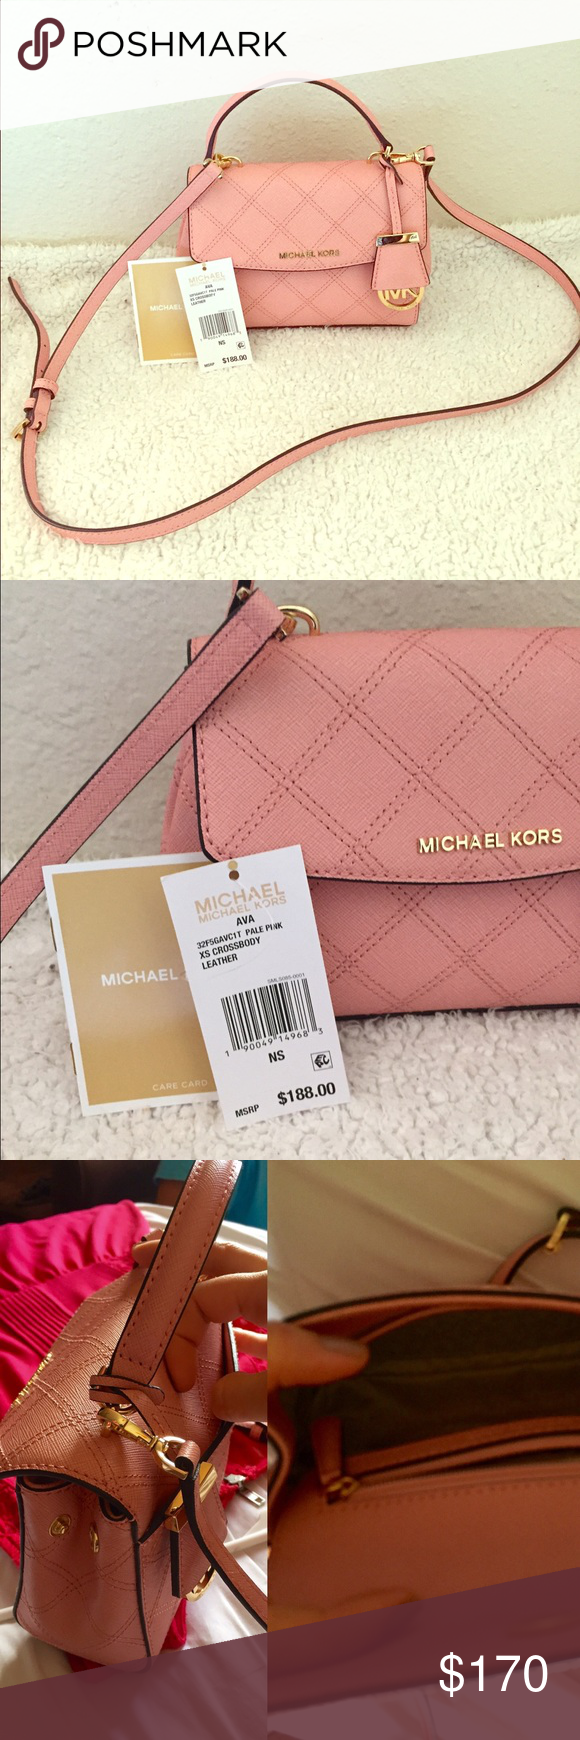 4e967ca3d Michael Kors xs Ava crossbody bag Brand new never been used Michael Kors  Ava Xs crossbody bag. Pale pink color with gold details.